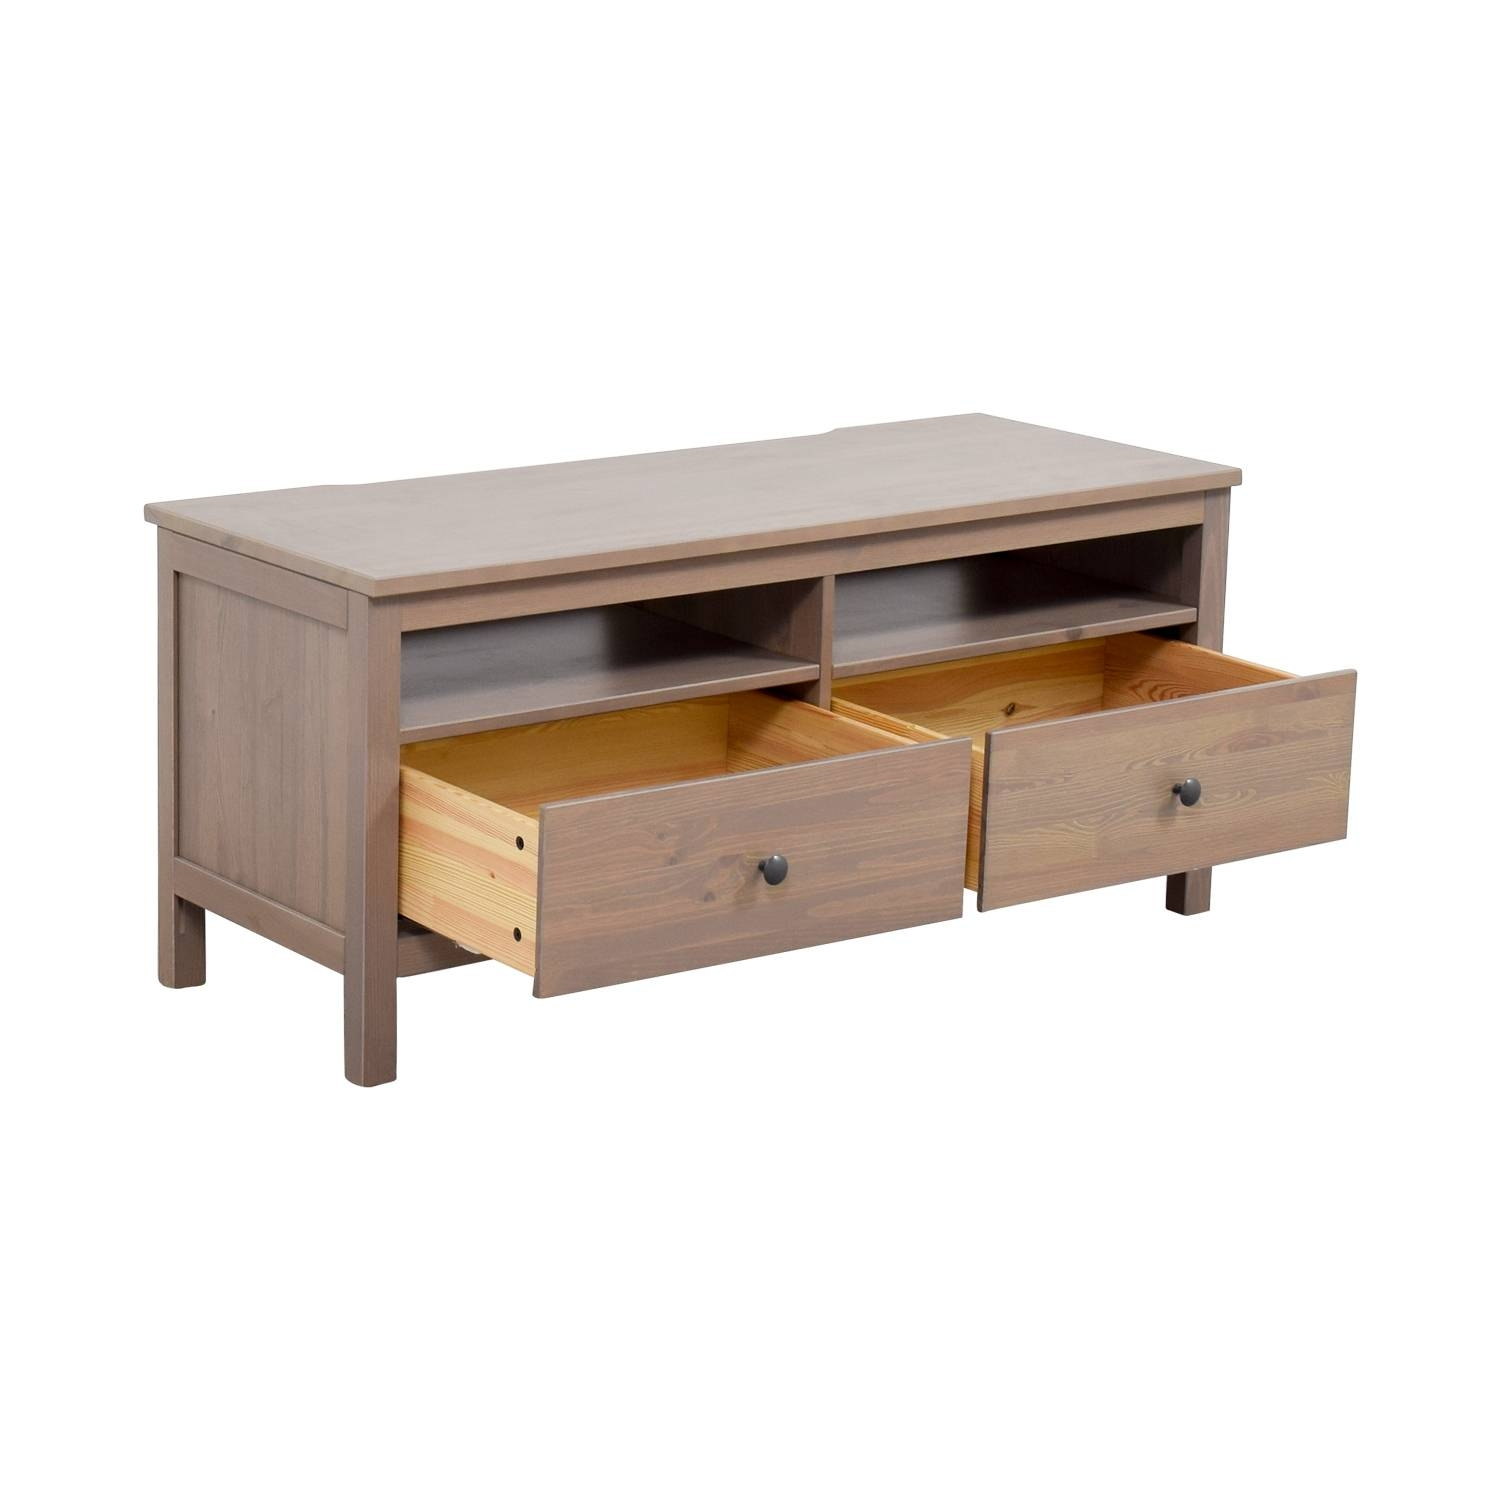 34% Off - Ikea Ikea Two-Drawer Tv Stand / Storage for Tv Drawer Units (Image 1 of 15)